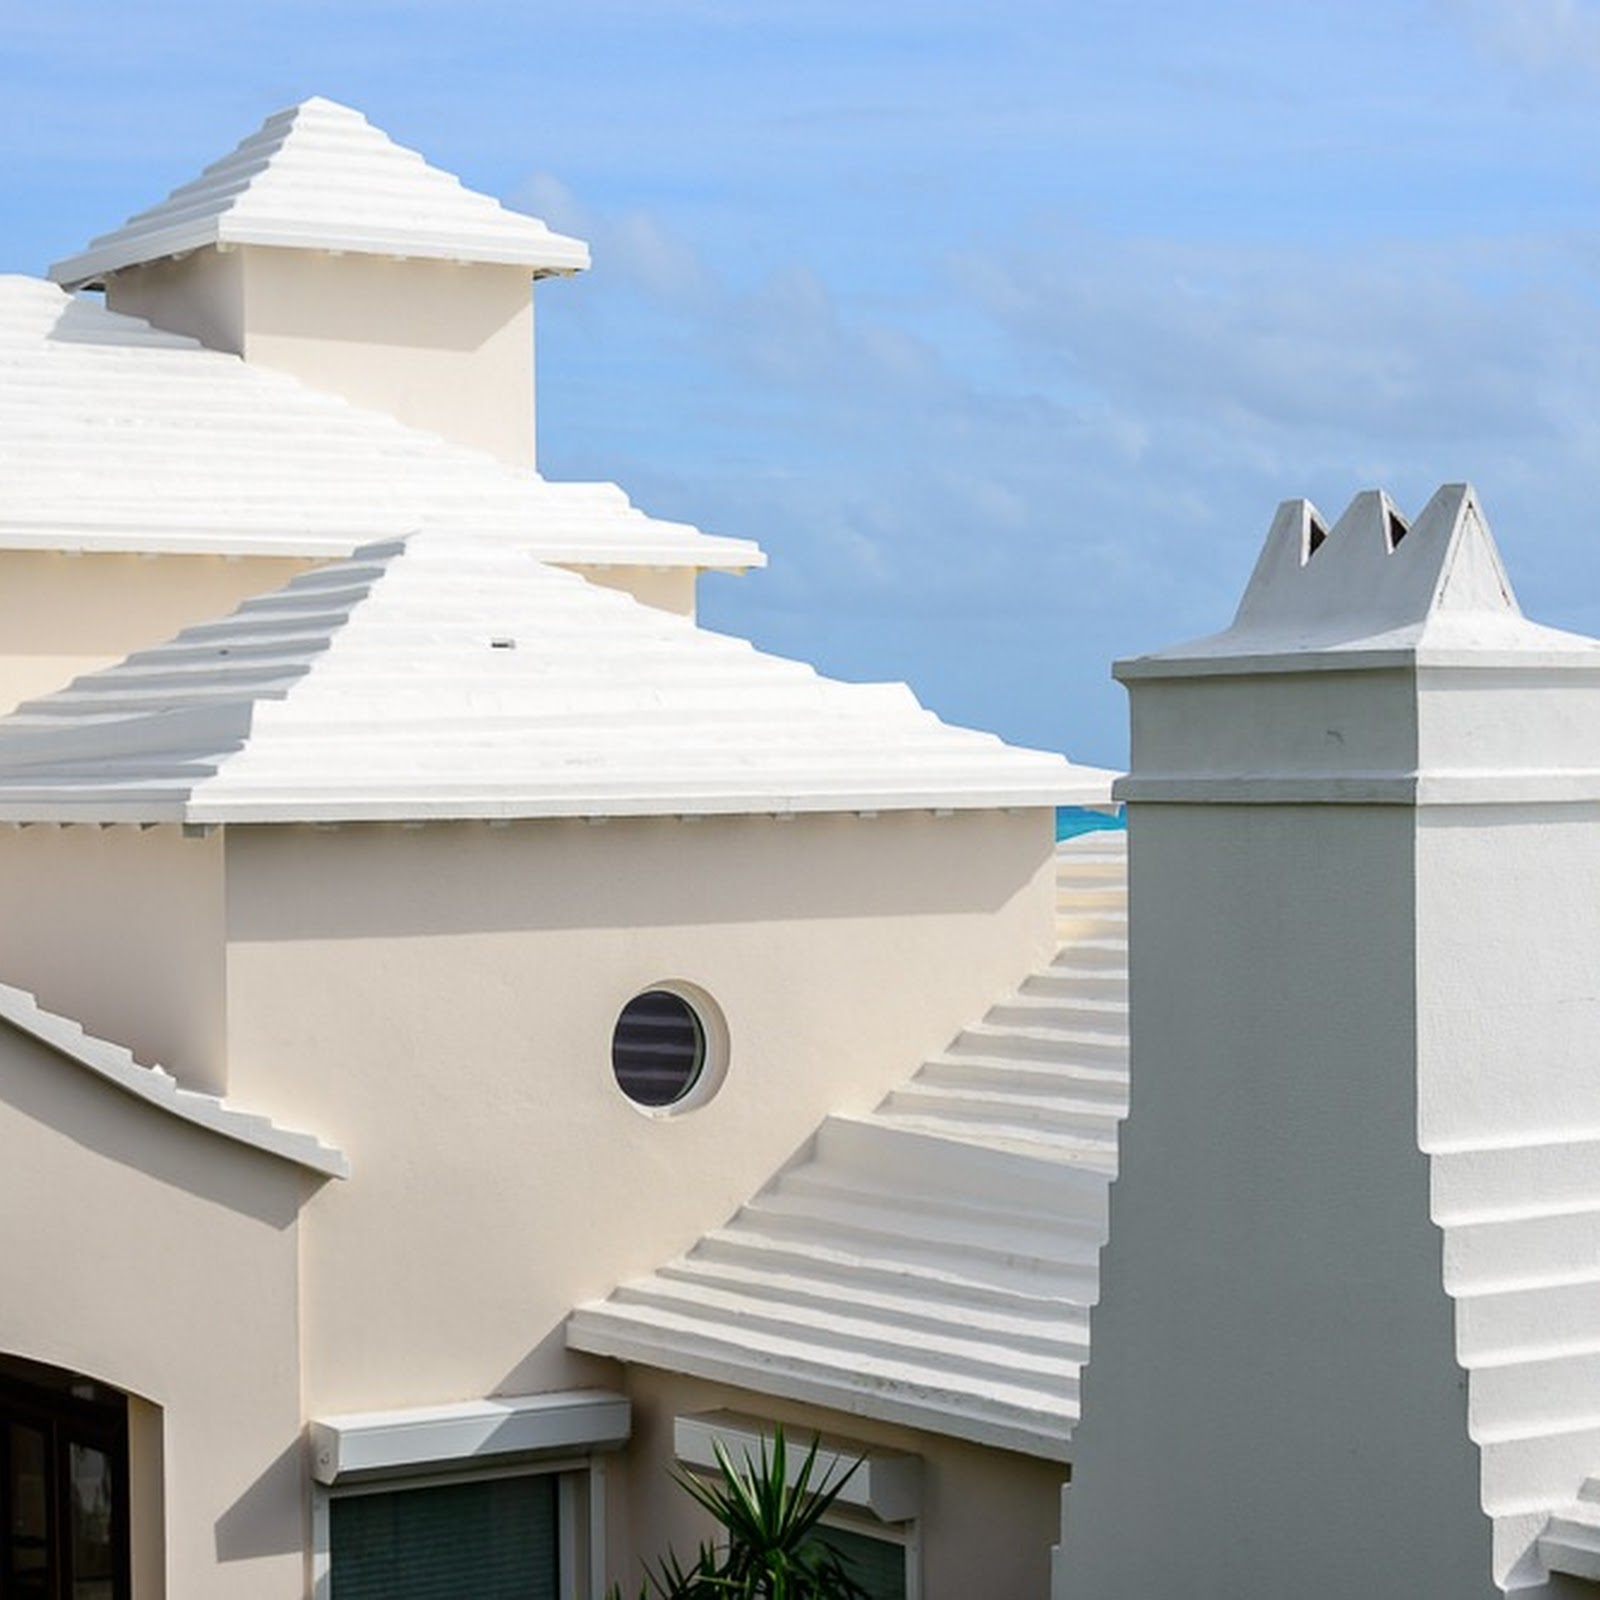 How Bermuda's Chronic Water Shortage Shaped The Islands' Iconic White Roof